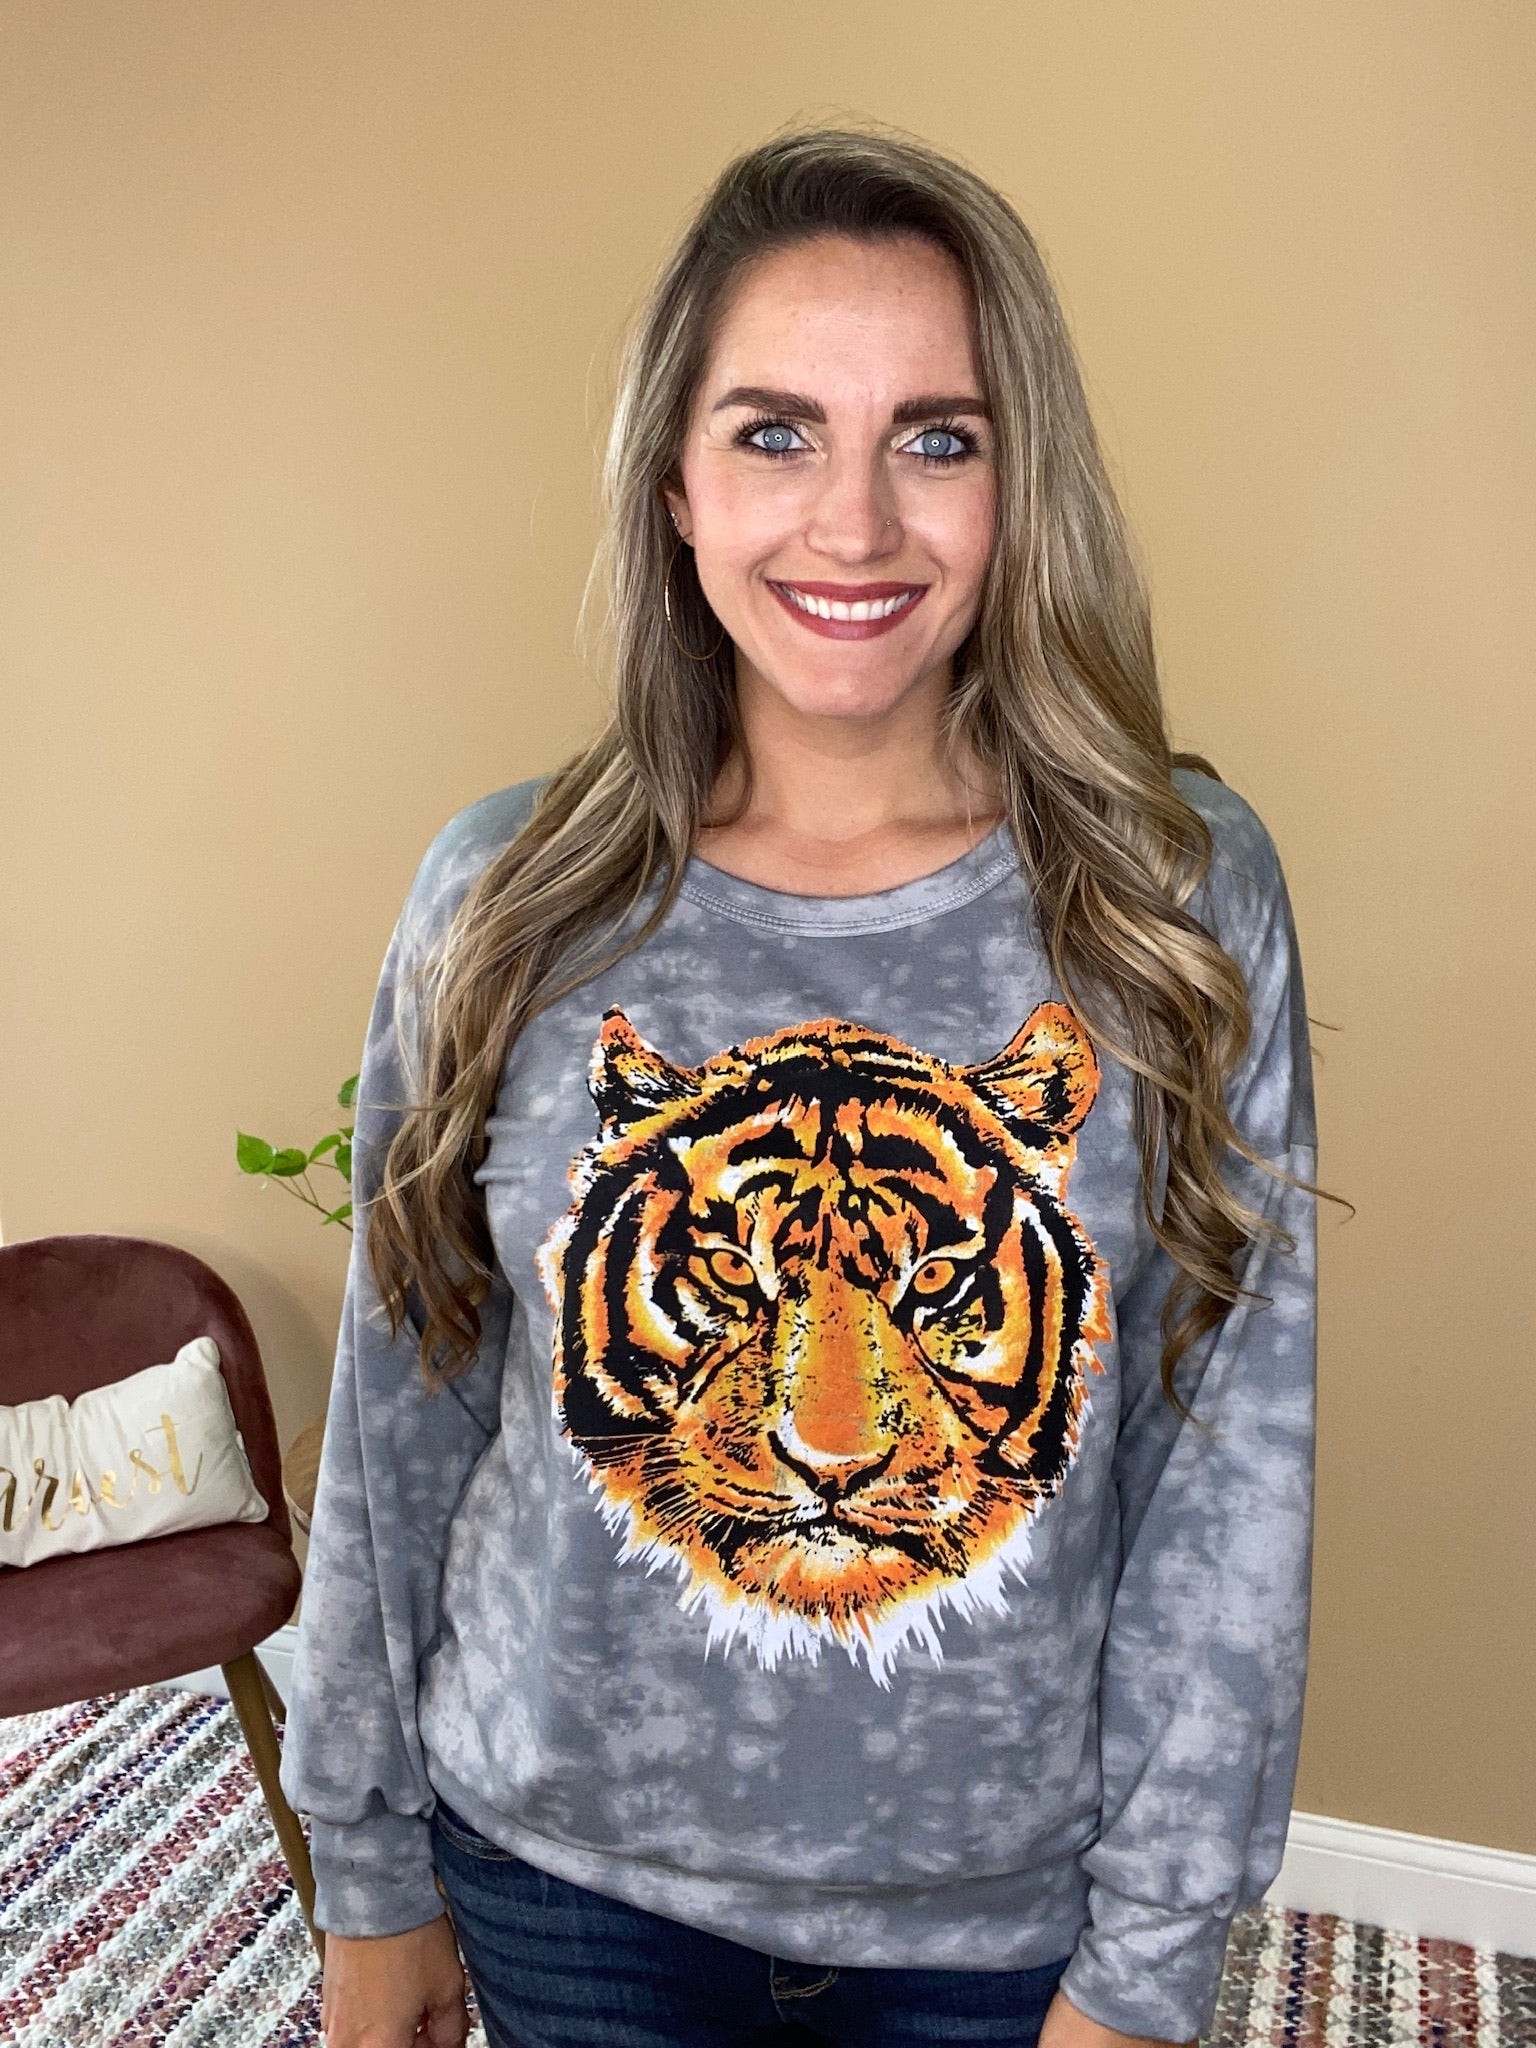 Joely Tiger Print Graphic Top